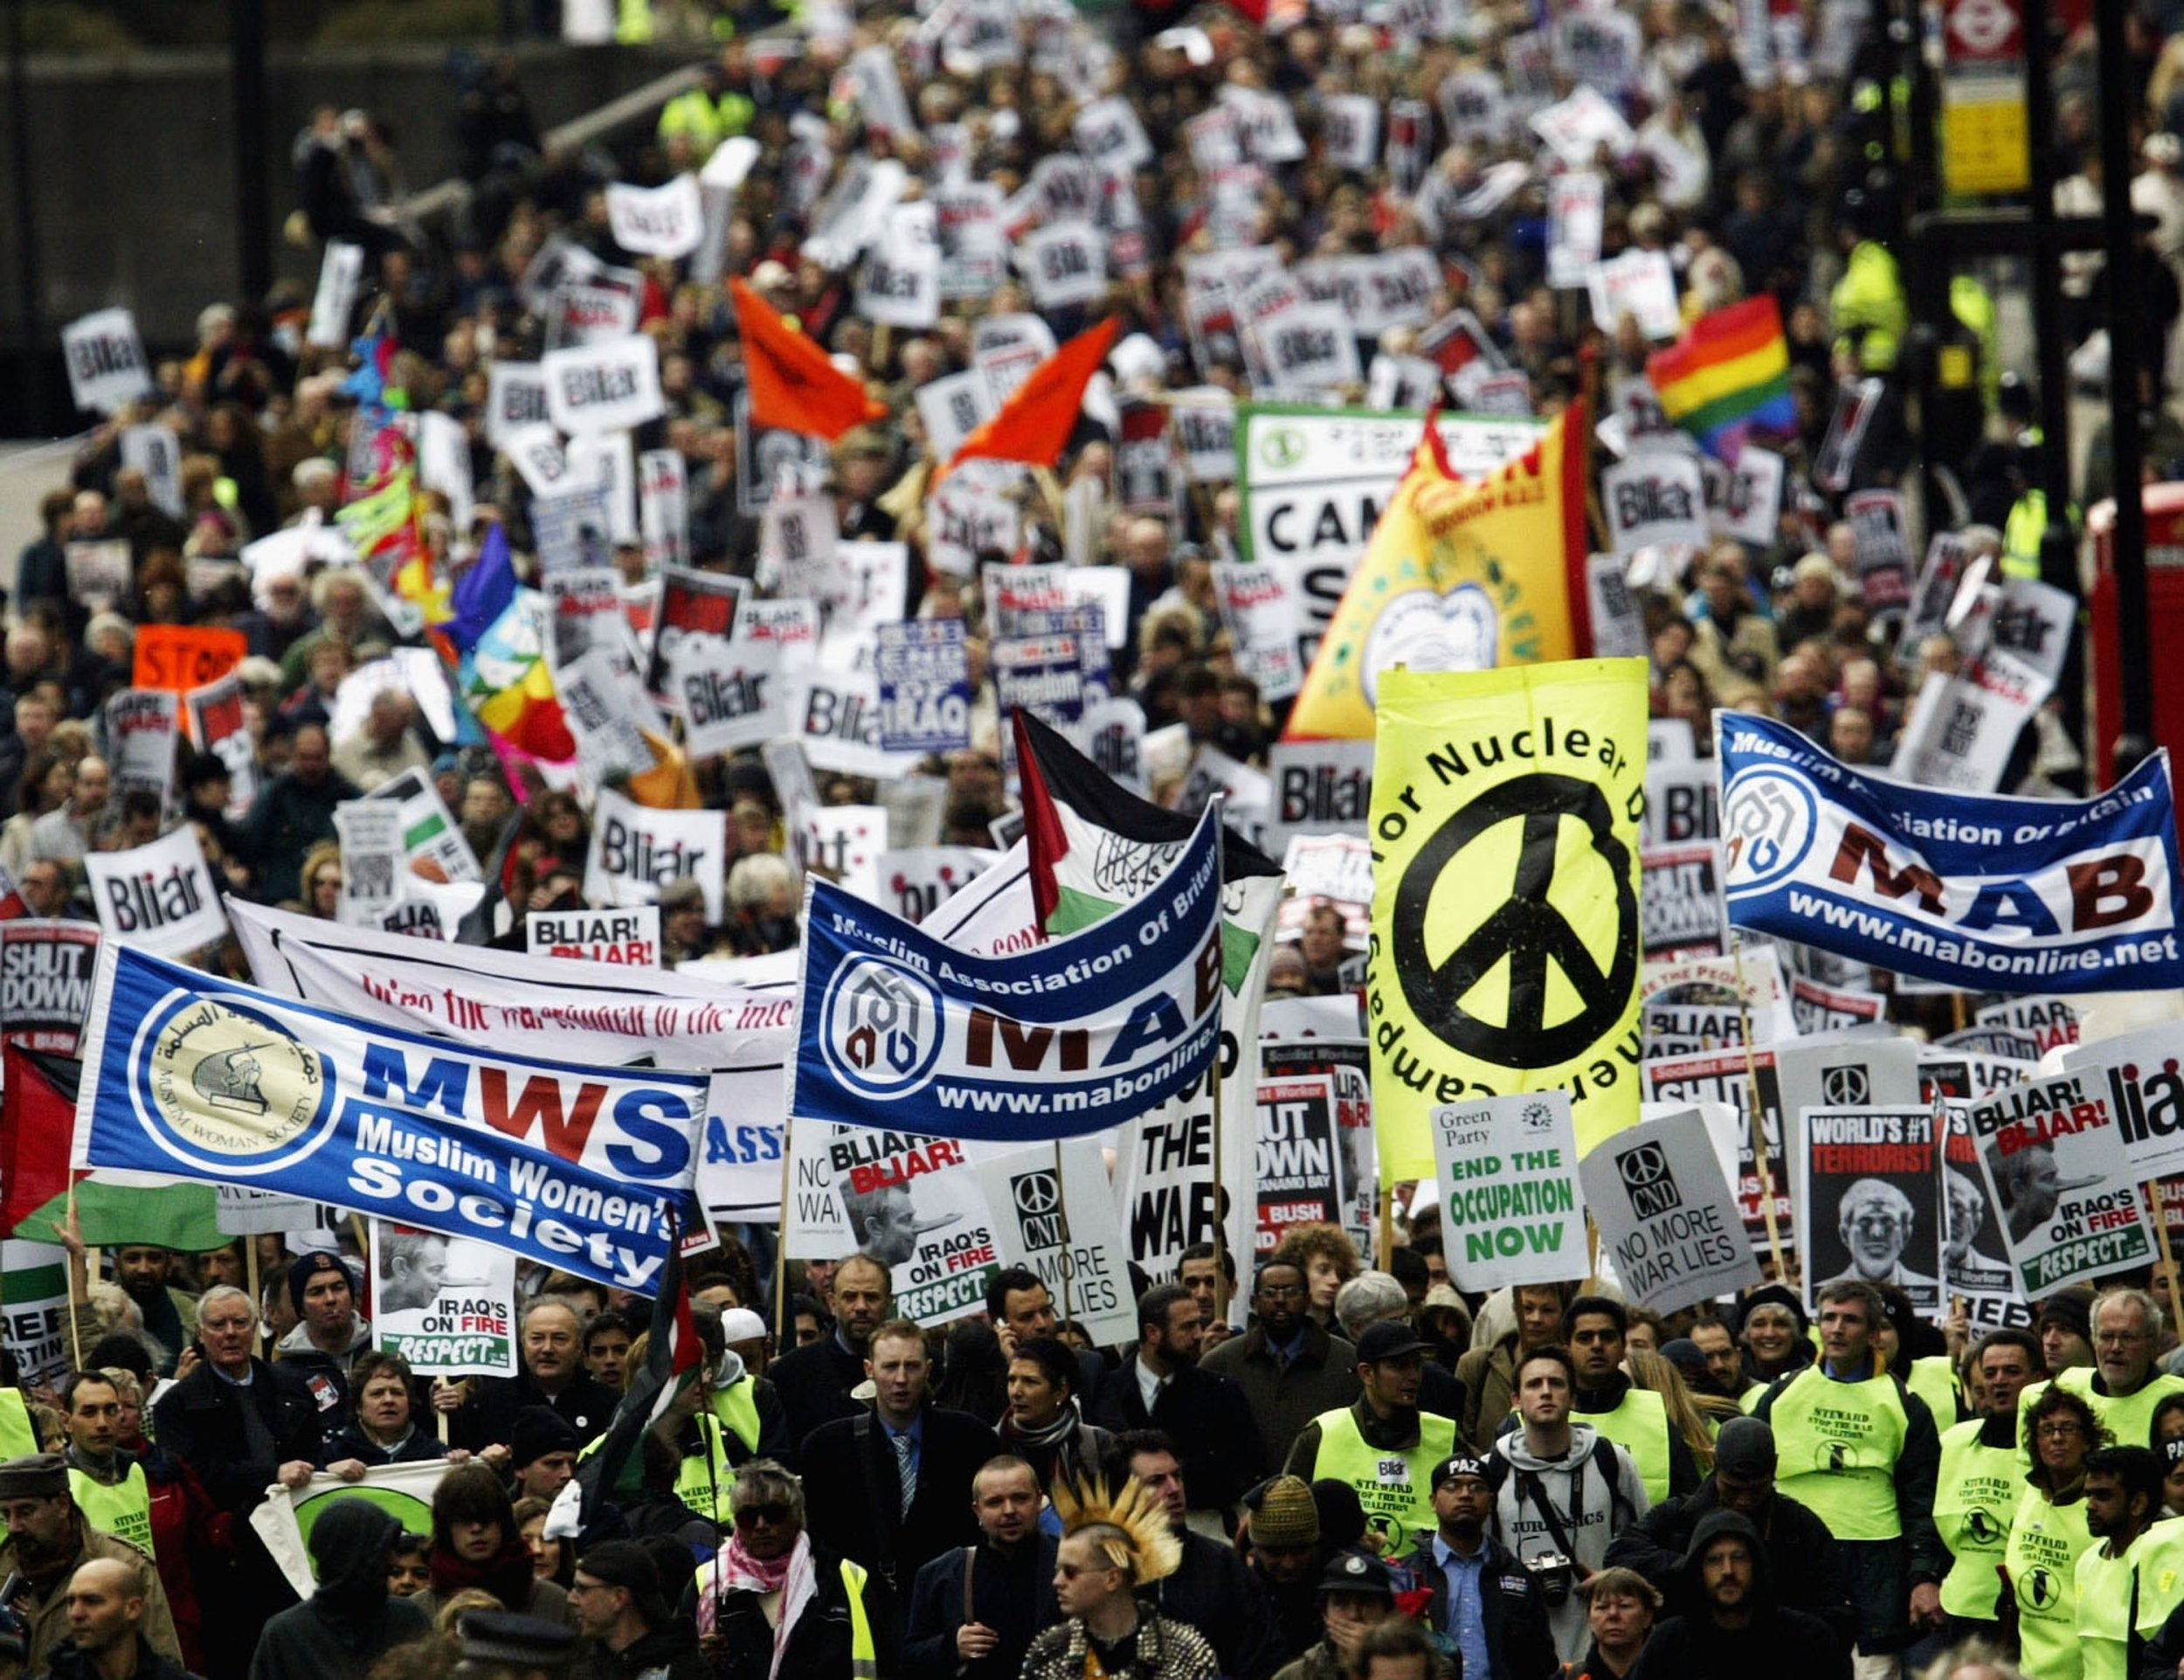 LONDON - MARCH 20: Anti-war demonstrators gather to mark the anniversary of the Iraq War March 20, 2004 in London. A march from Hyde Park to Trafalgar Square was held to protest again war in Iraq. (Photo by Graeme Robertson/Getty Images) *** Local Caption ***